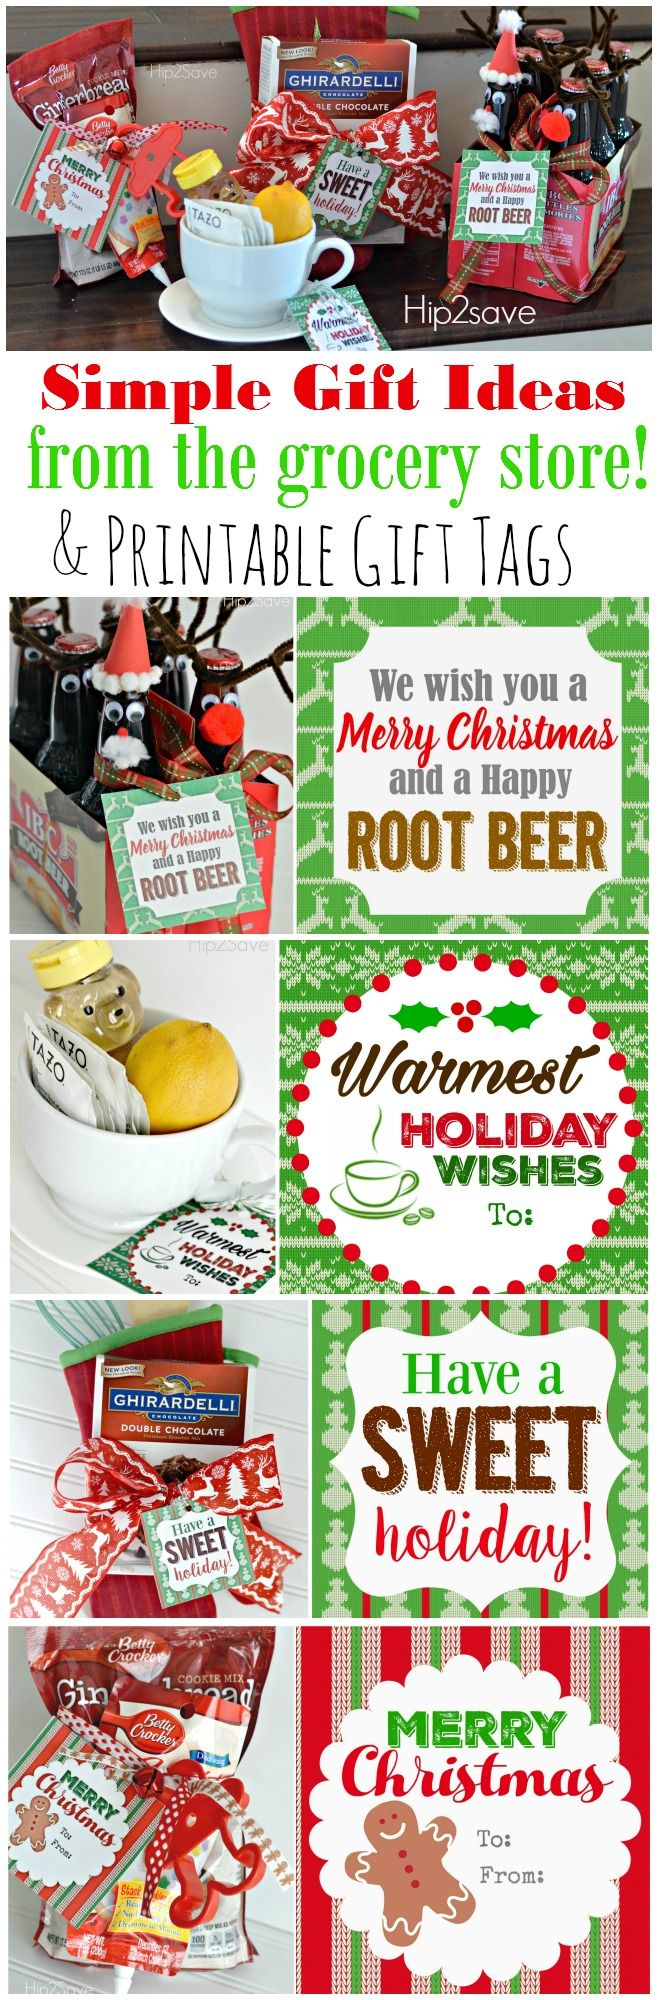 FOUR Easy and Affordable Holiday Gift Ideas (PLUS, Free Printable GiftTags)